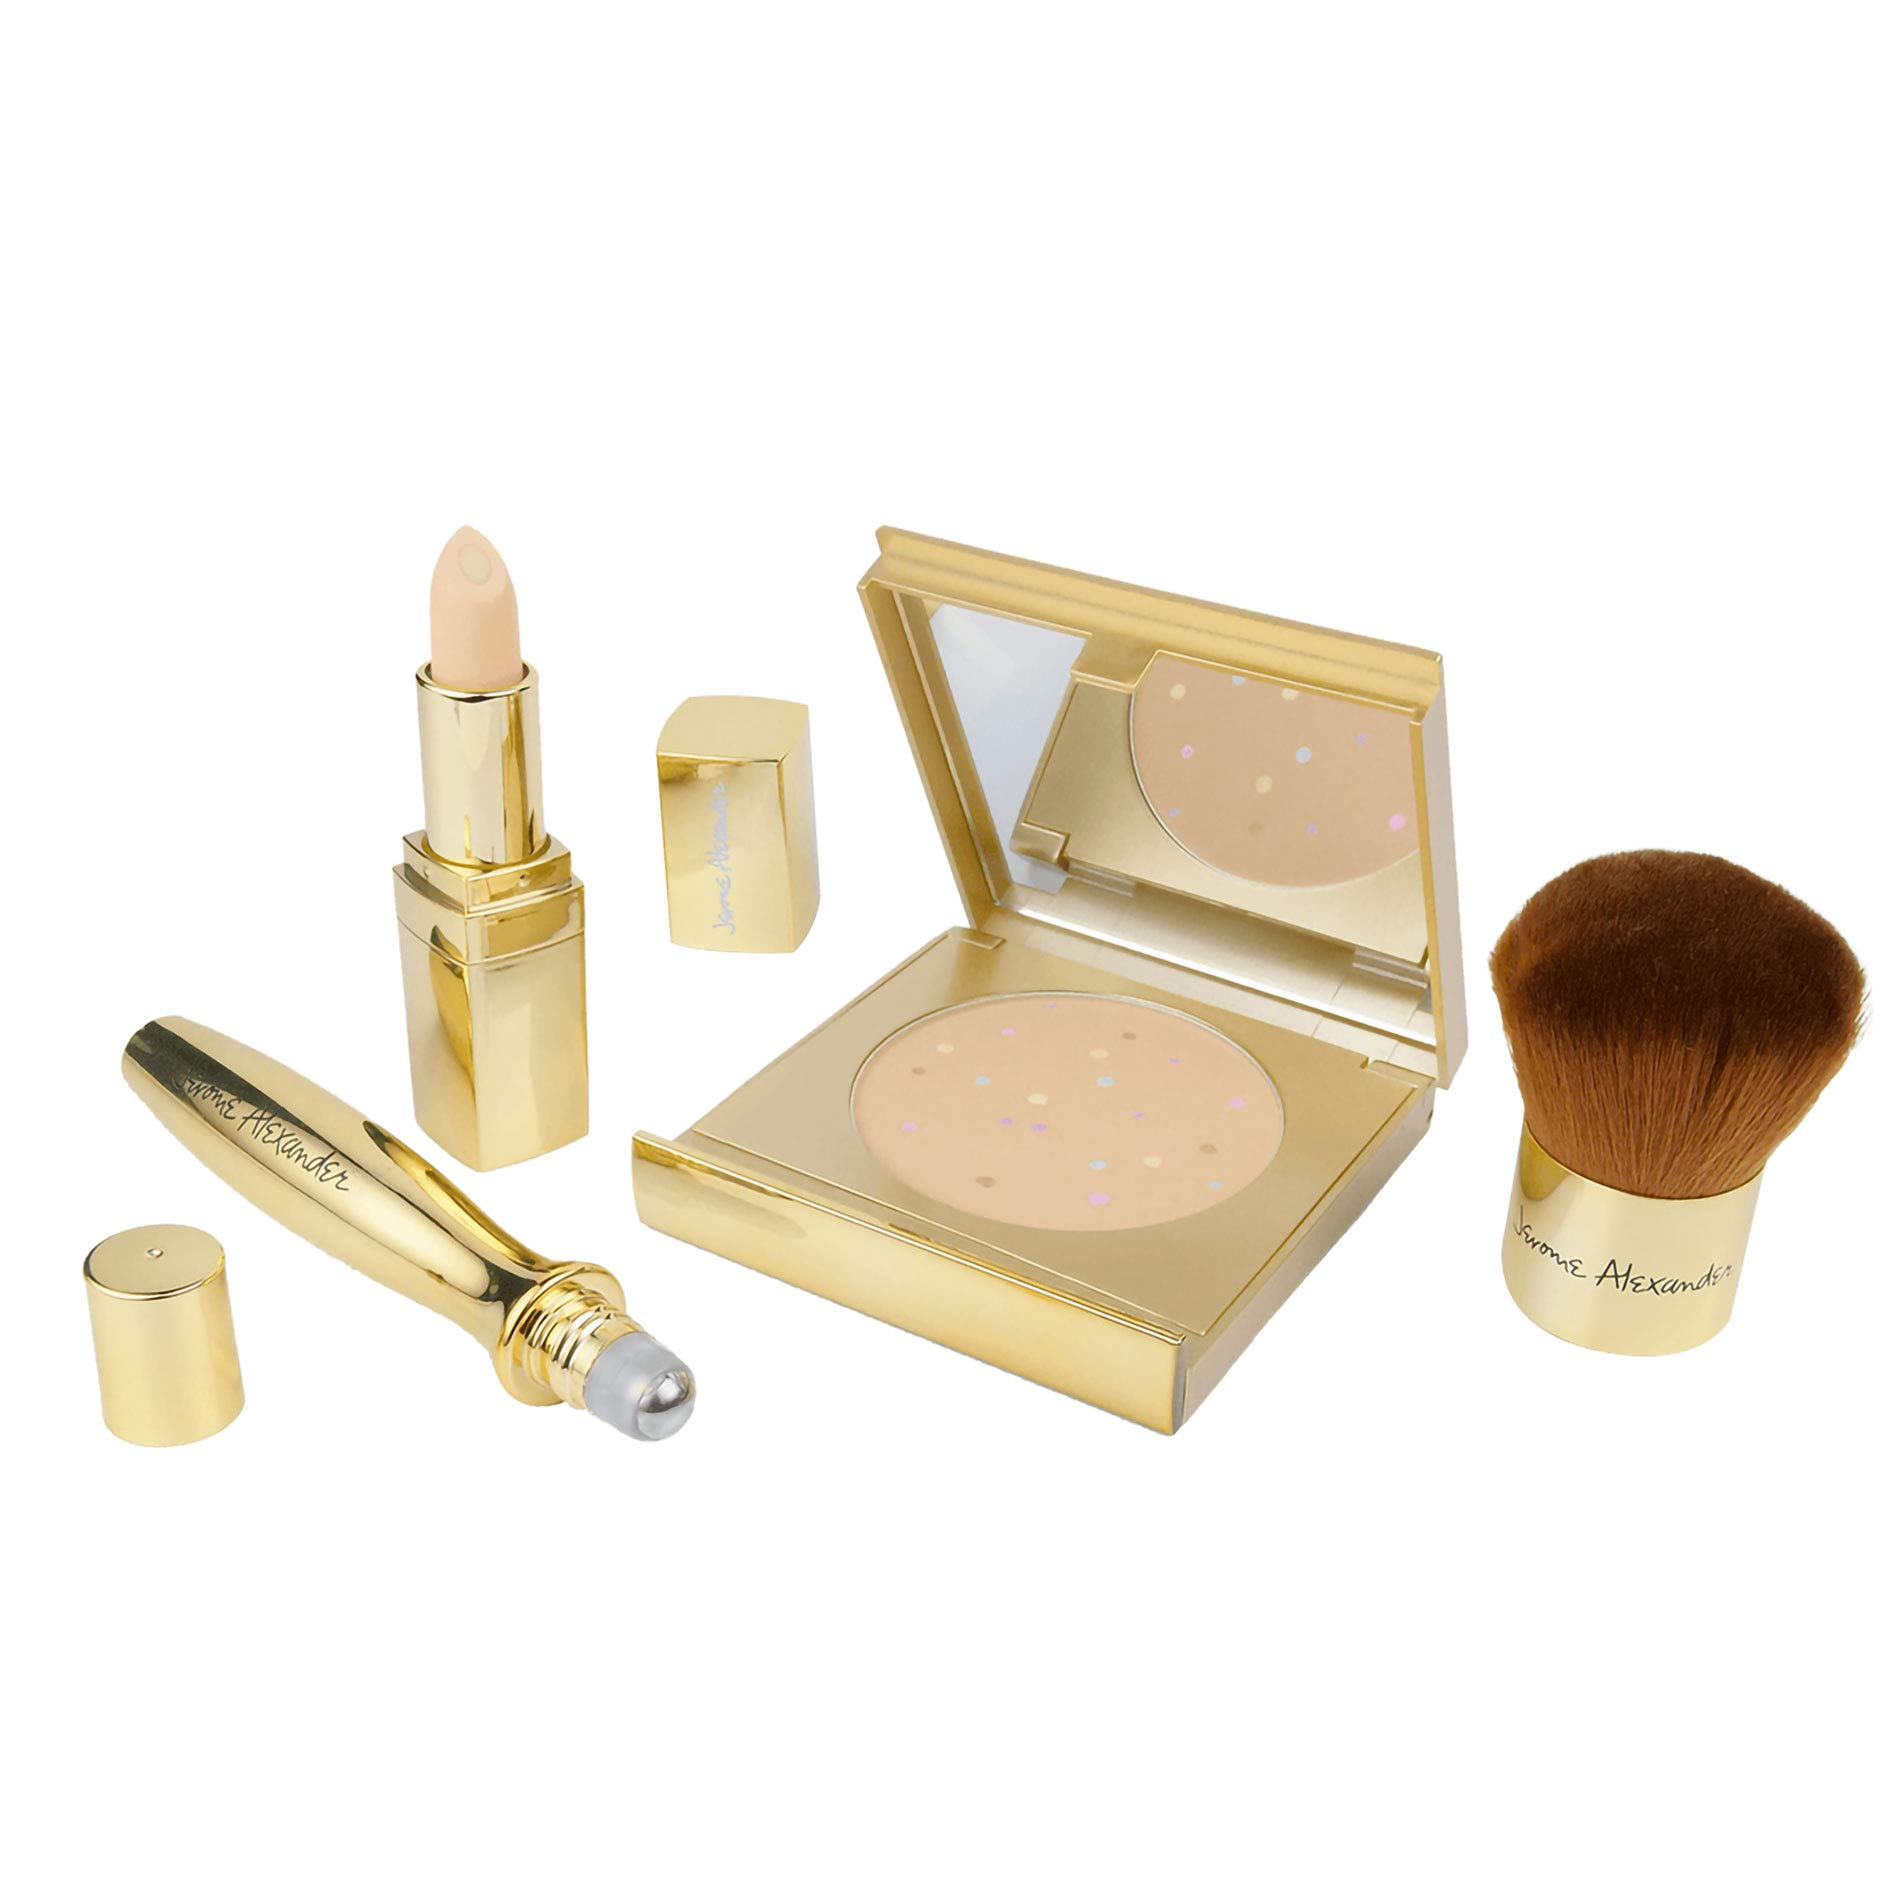 Jerome Alexander 50th Anniversary Holiday Makeup Gift Set - MagicMinerals Powder Gold Compact, Kabuki Brush, CoverAge Concealer and Rollerball - Limited Gold Edition 4-Piece Kit-Light